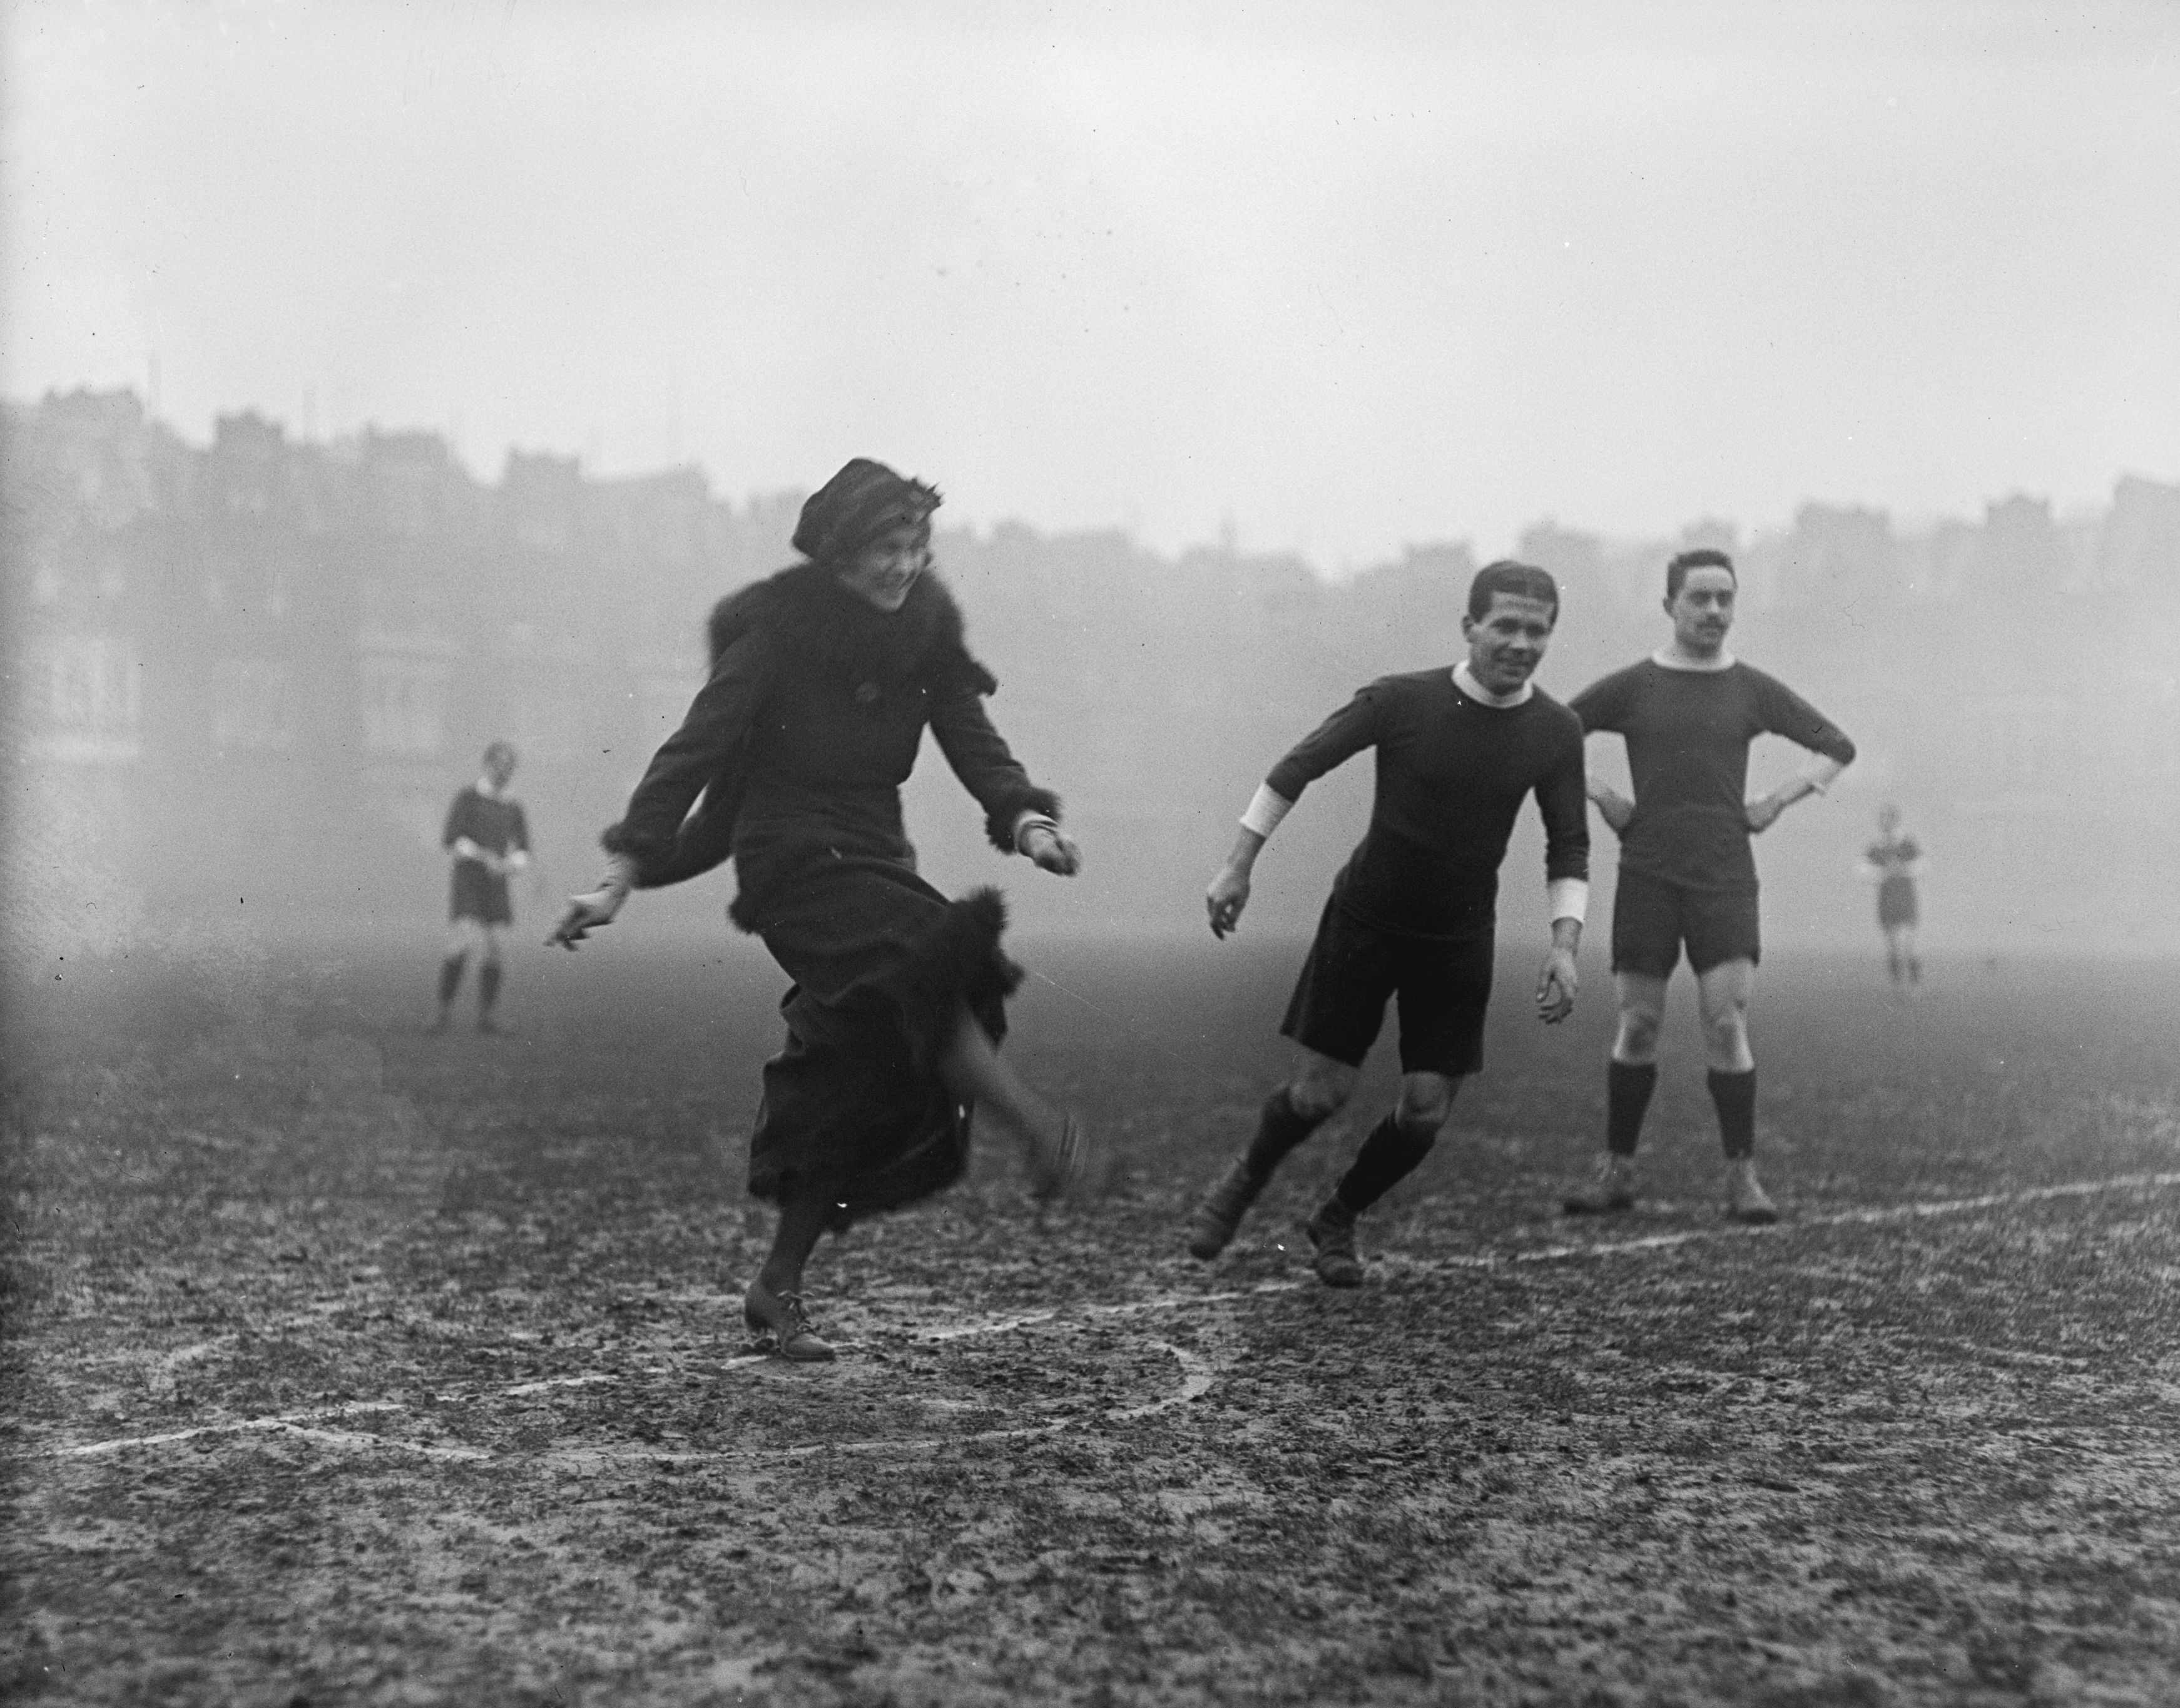 The Myth of the Christmas Truce Soccer Match | New Republic